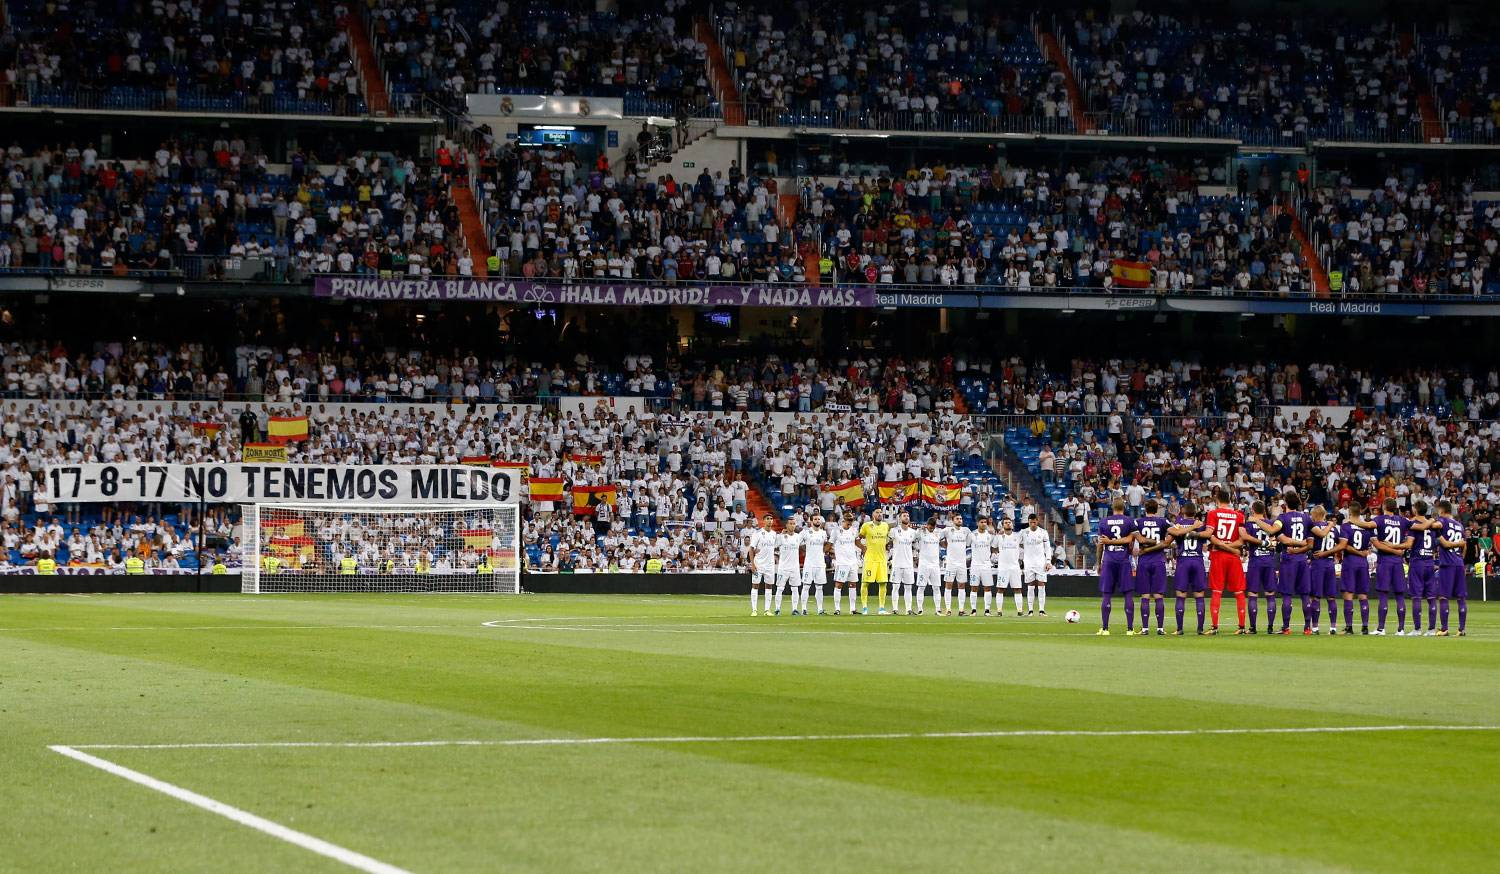 Real Madrid - Real Madrid - Fiorentina - 23-08-2017